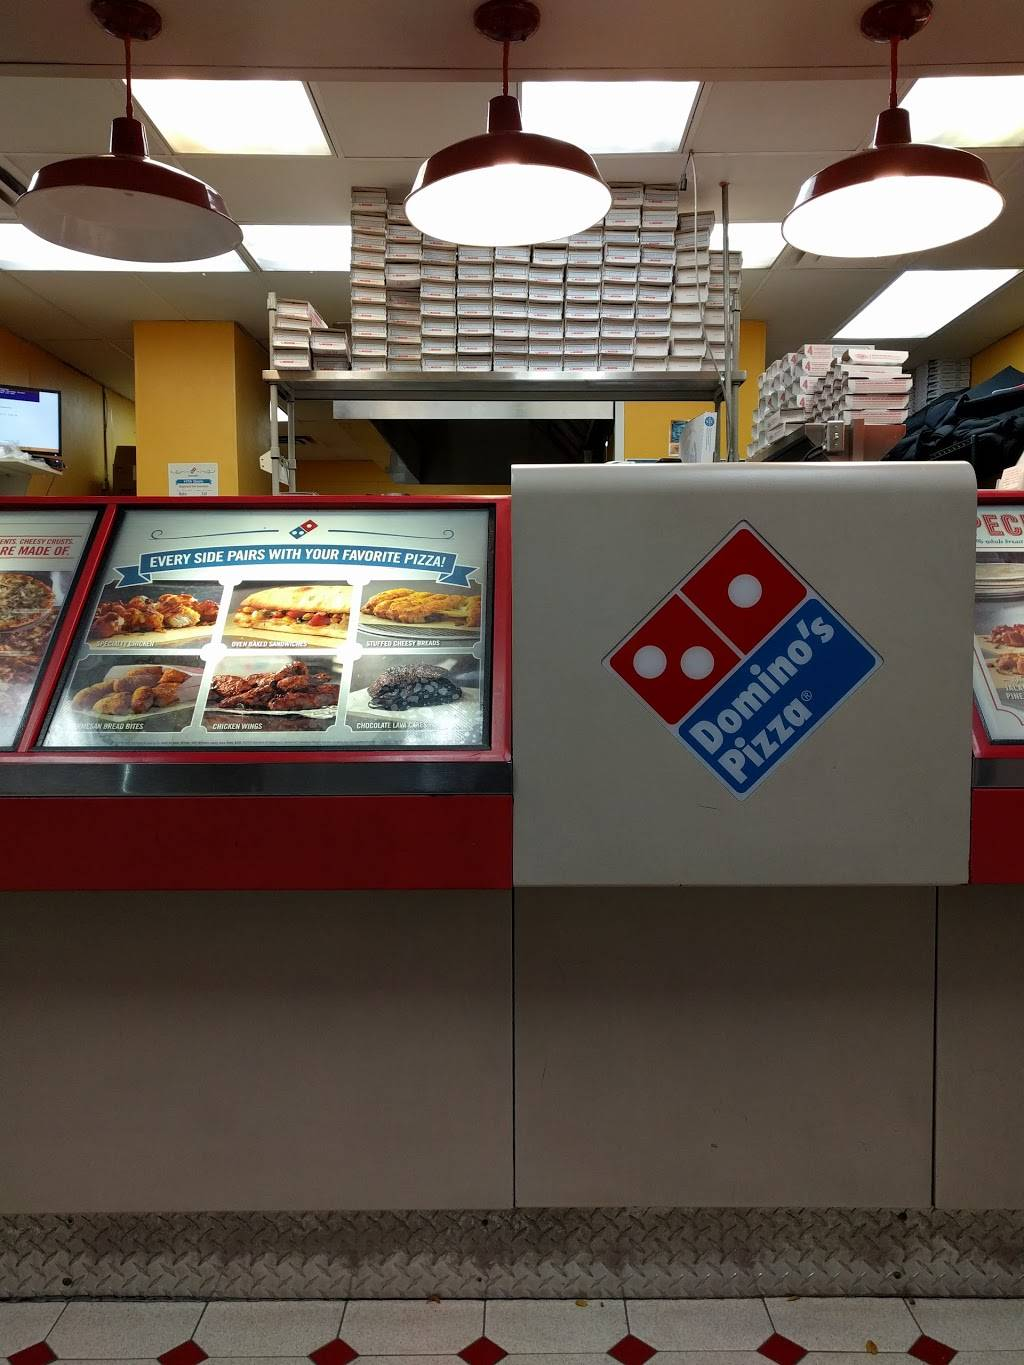 Dominos Pizza | meal delivery | 464 3rd Ave, New York, NY 10016, USA